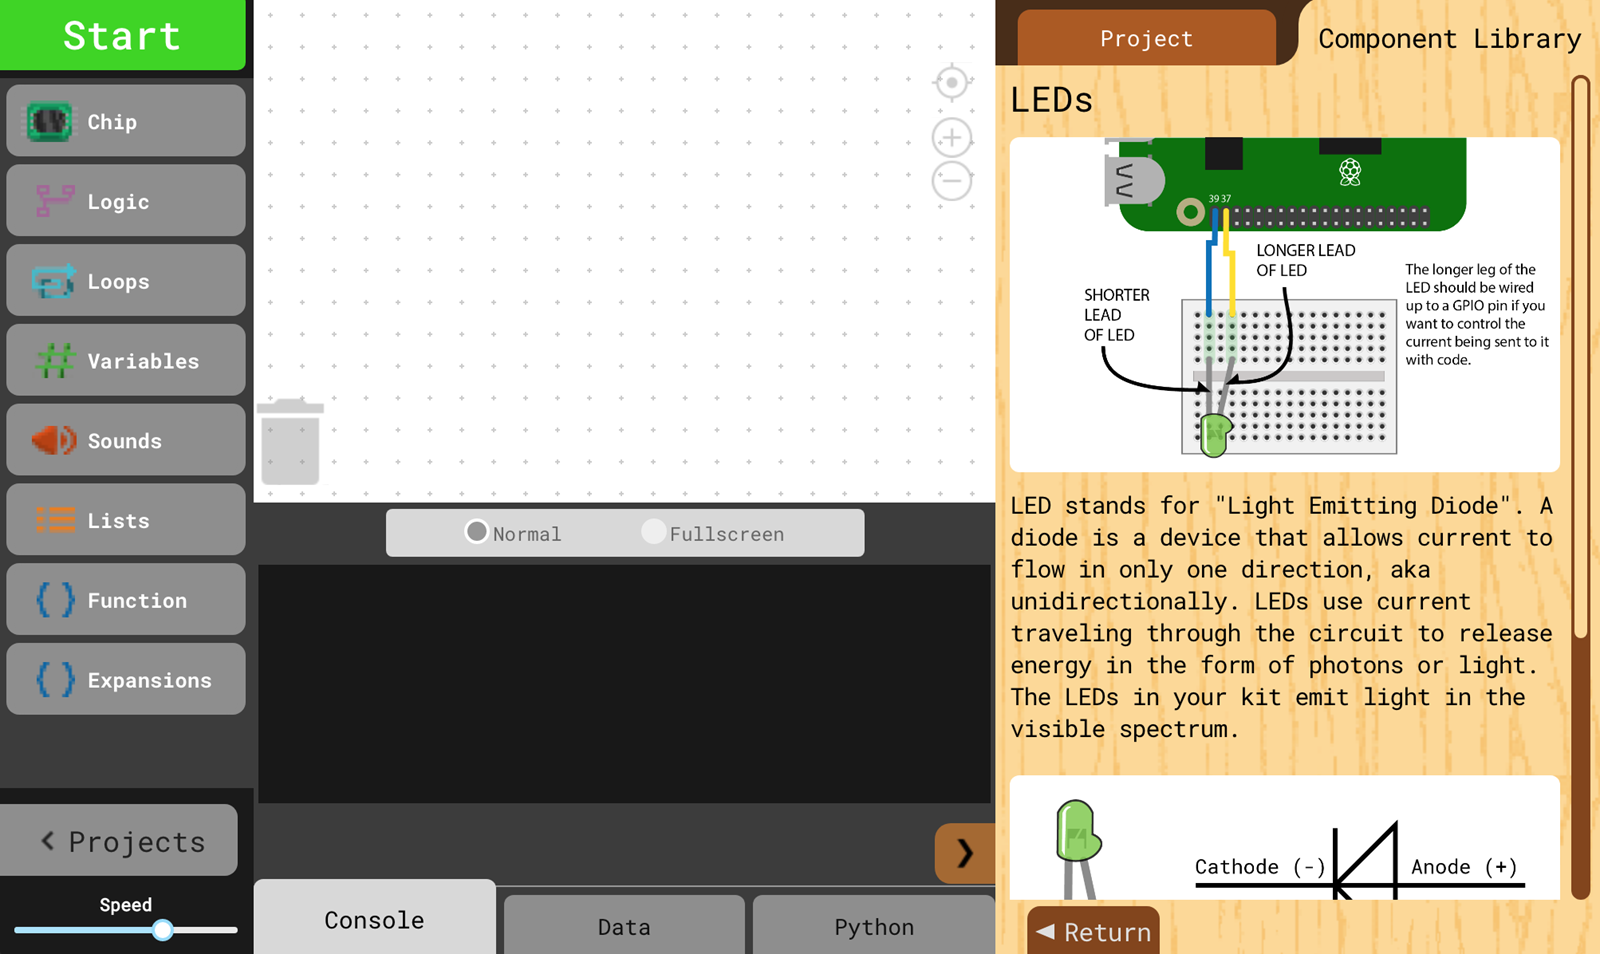 The component library, featuring a coding interface and information about Breadboards